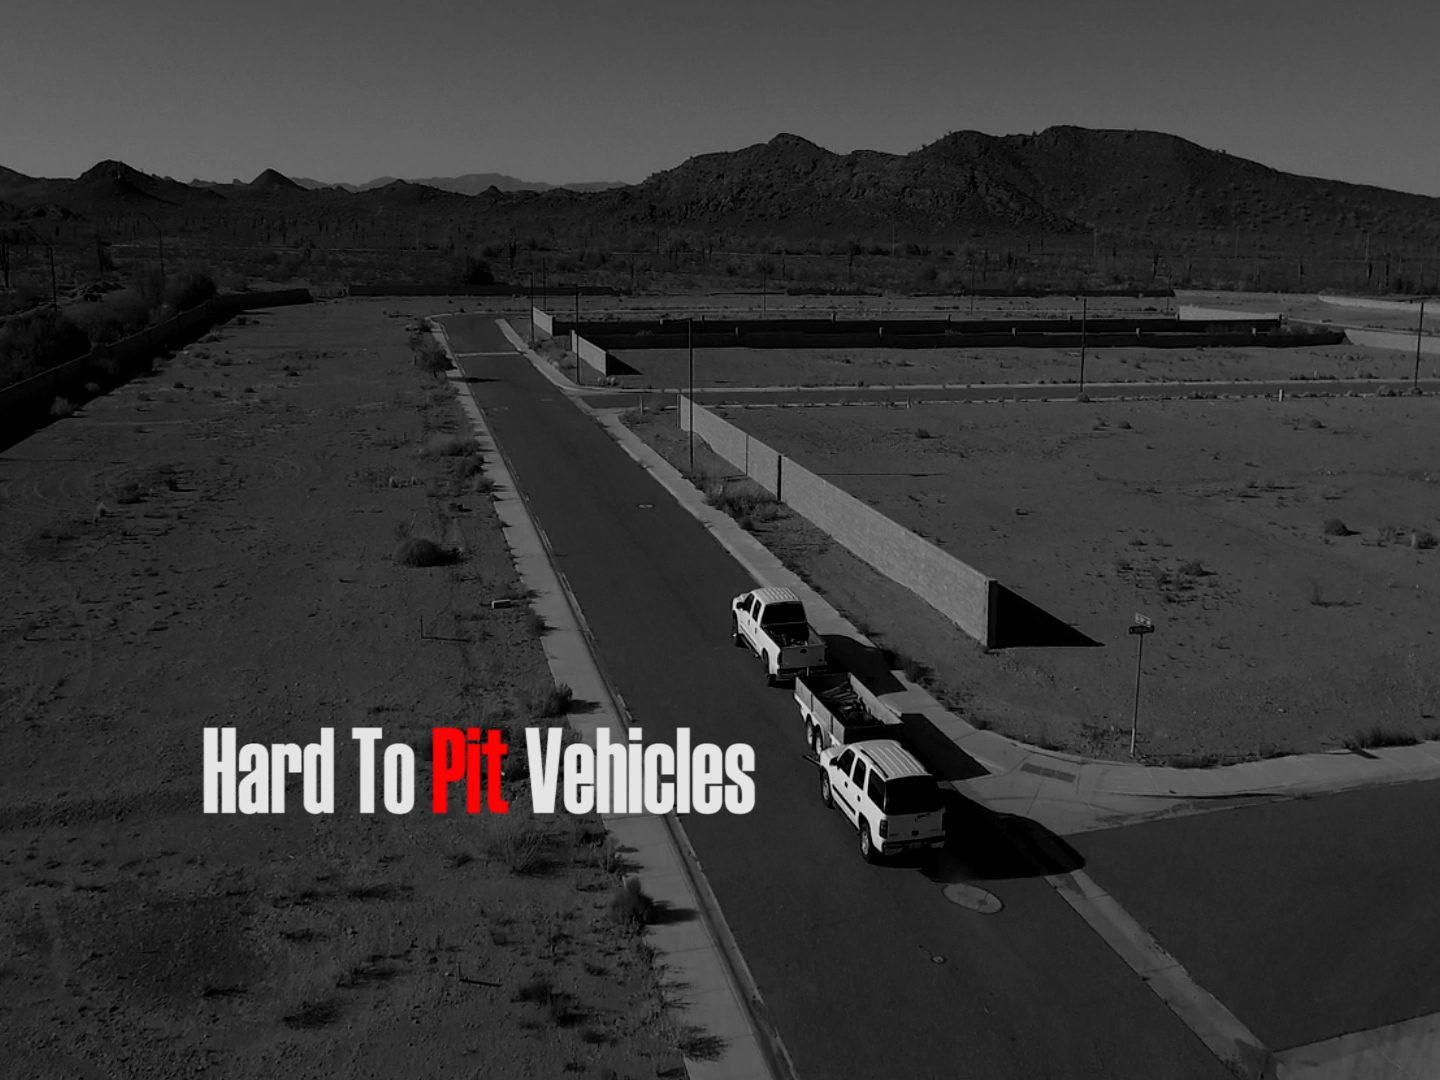 Hard to Pit Vehicles